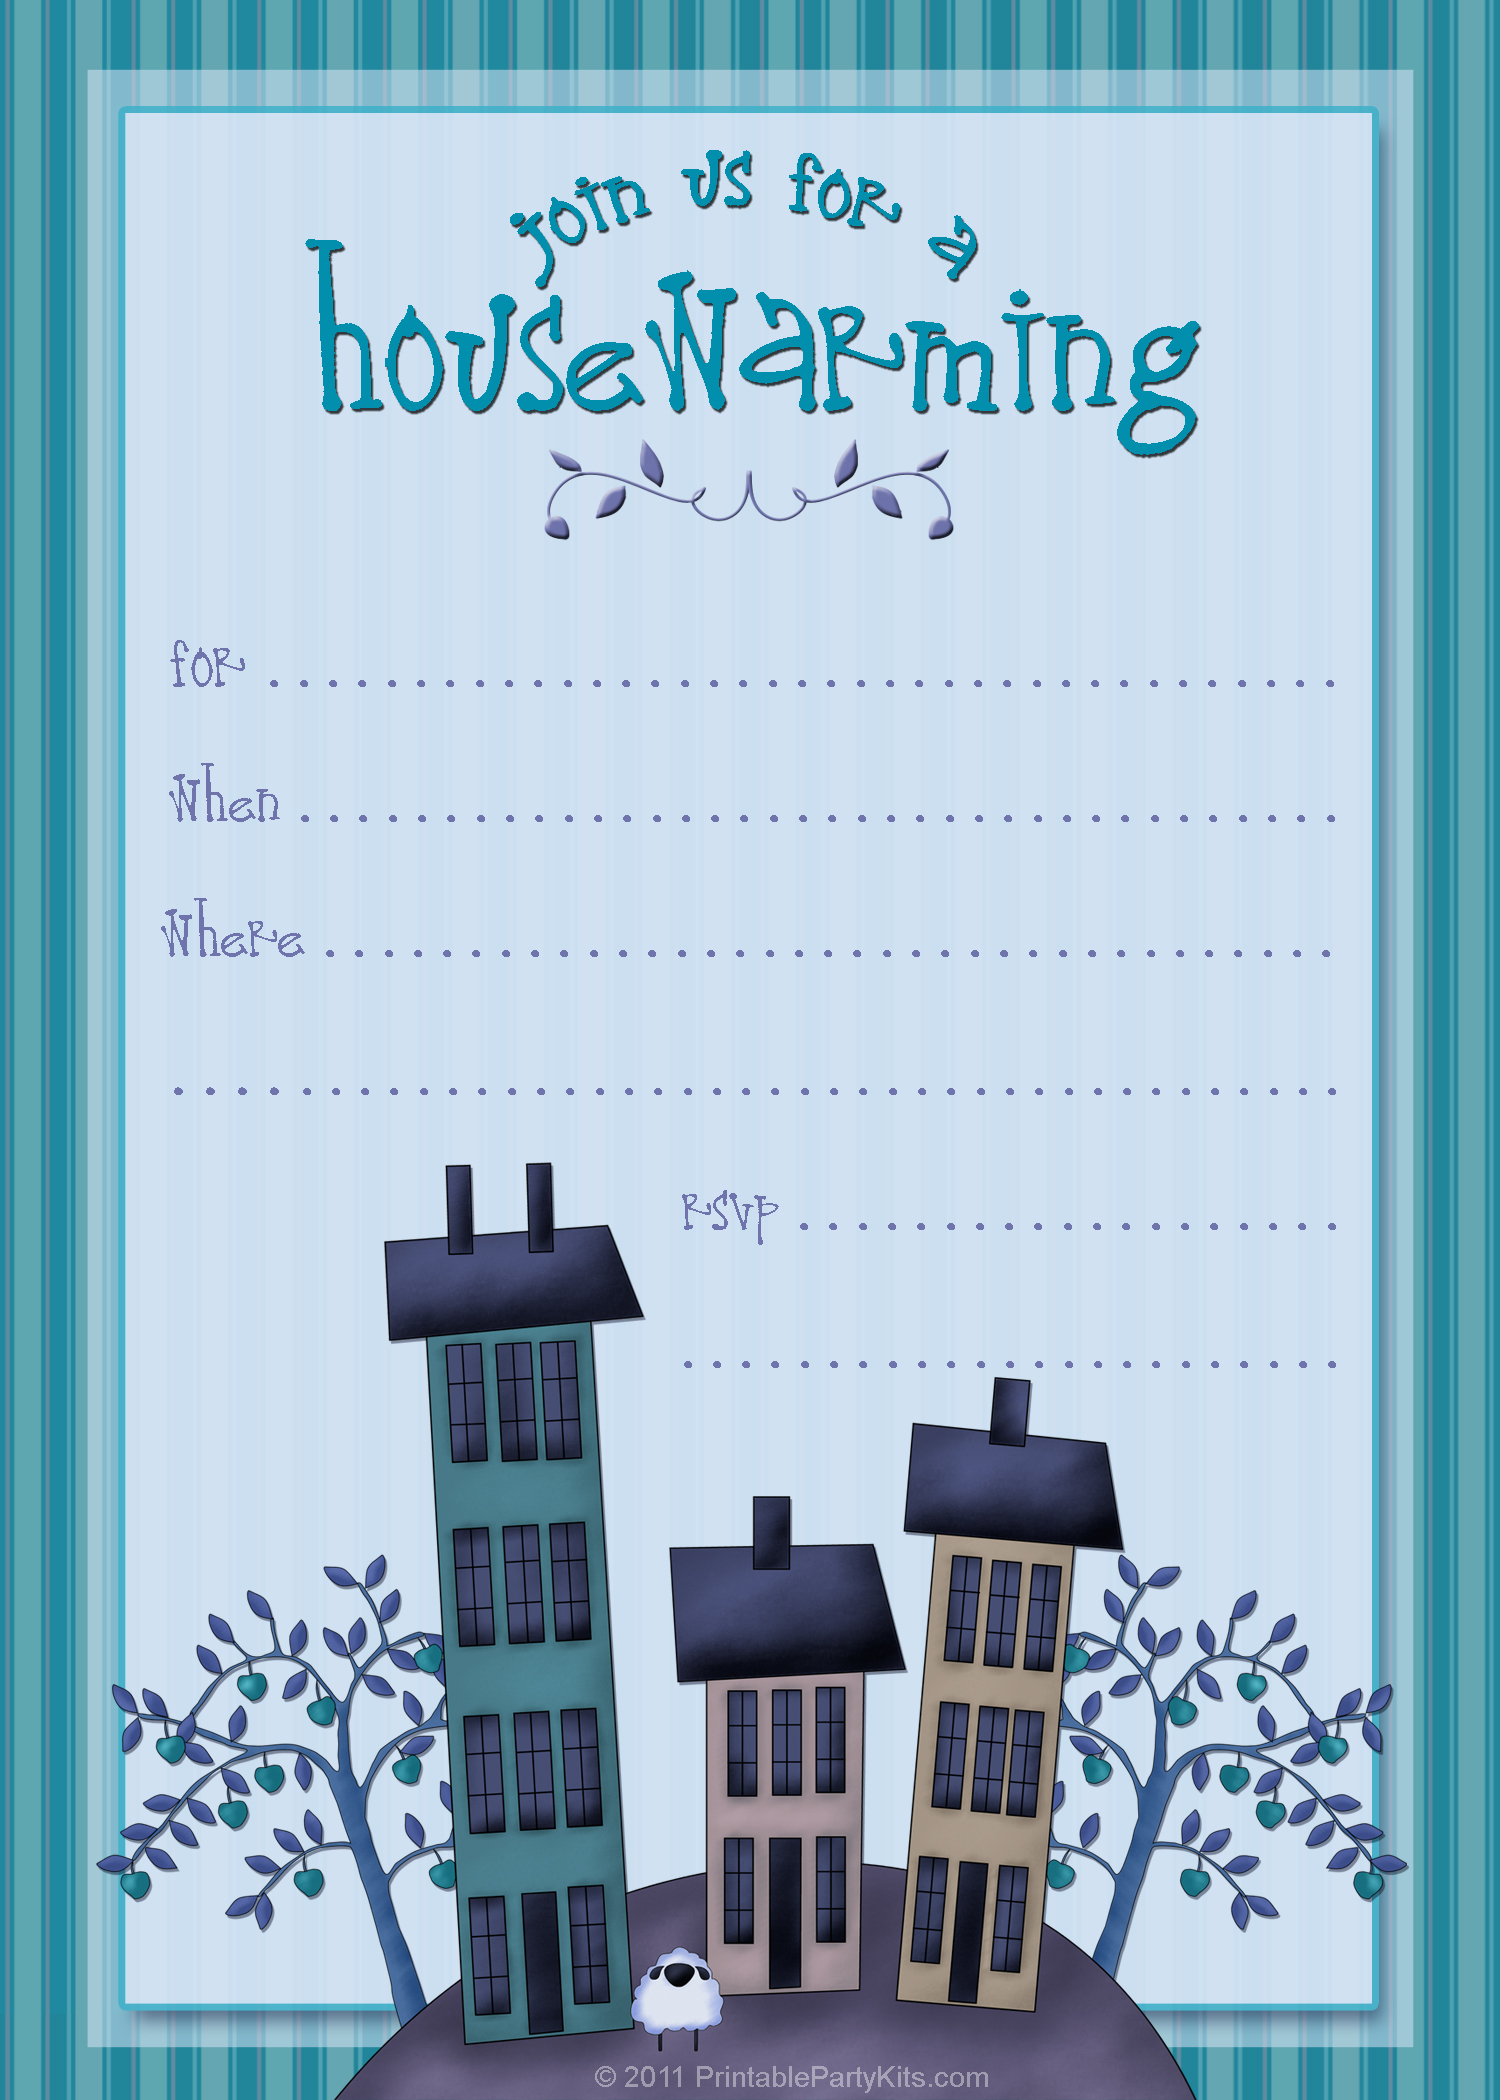 free house warming clipart